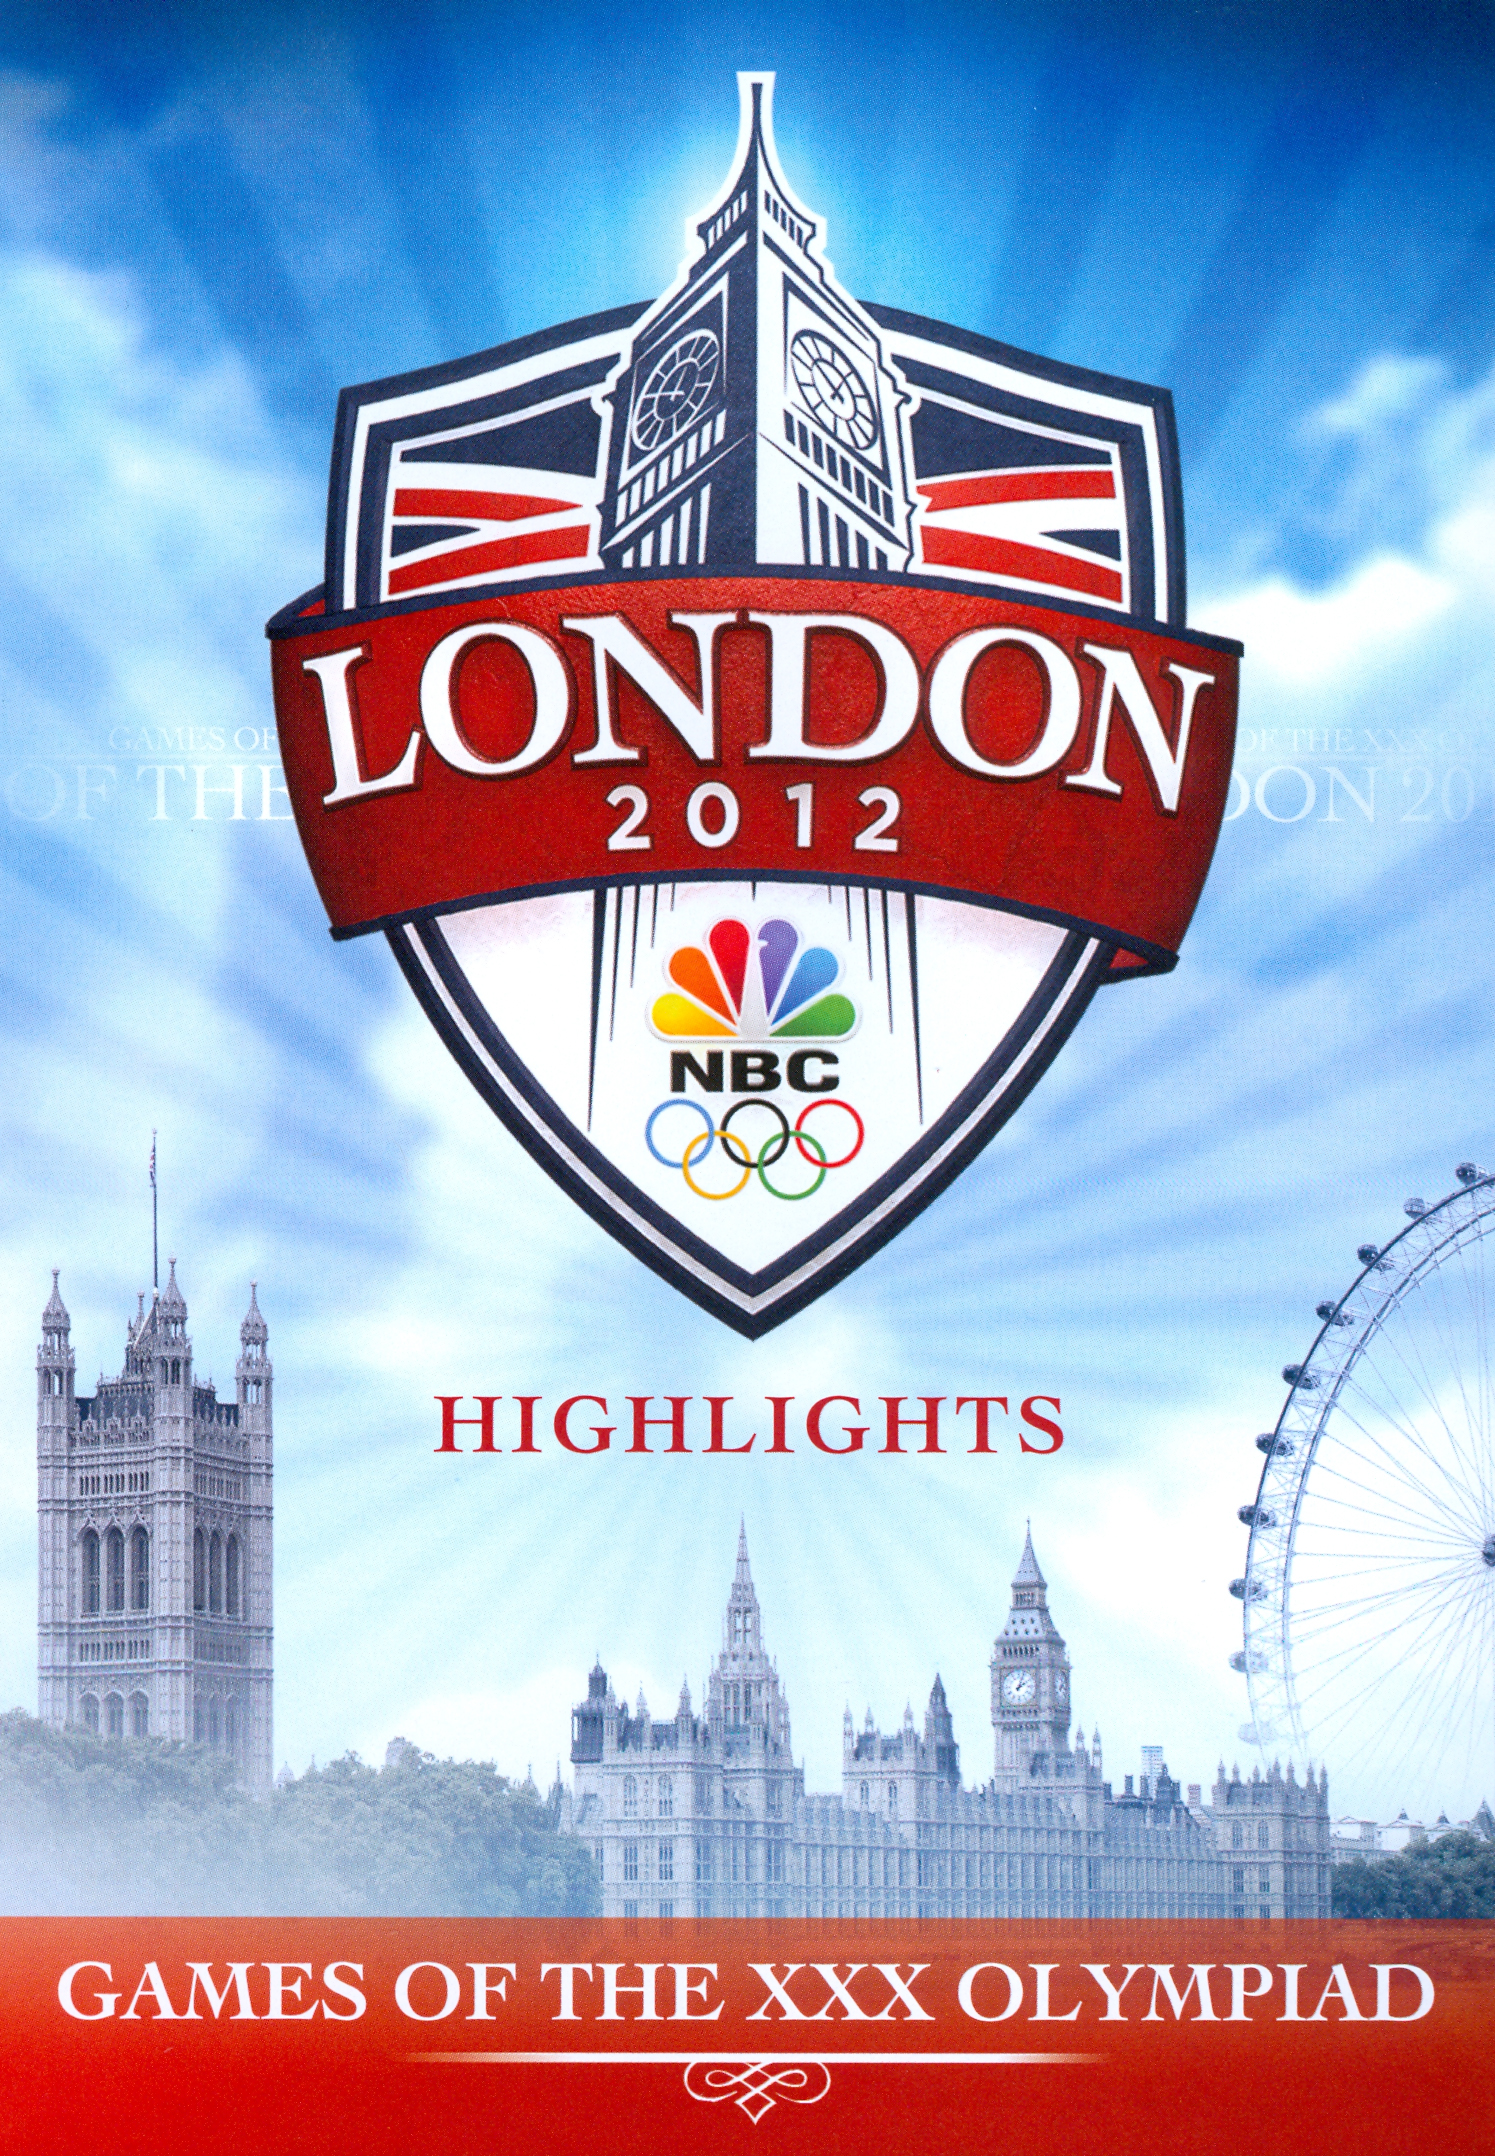 Games of the XXX Olympiad: London 2012 Highlights